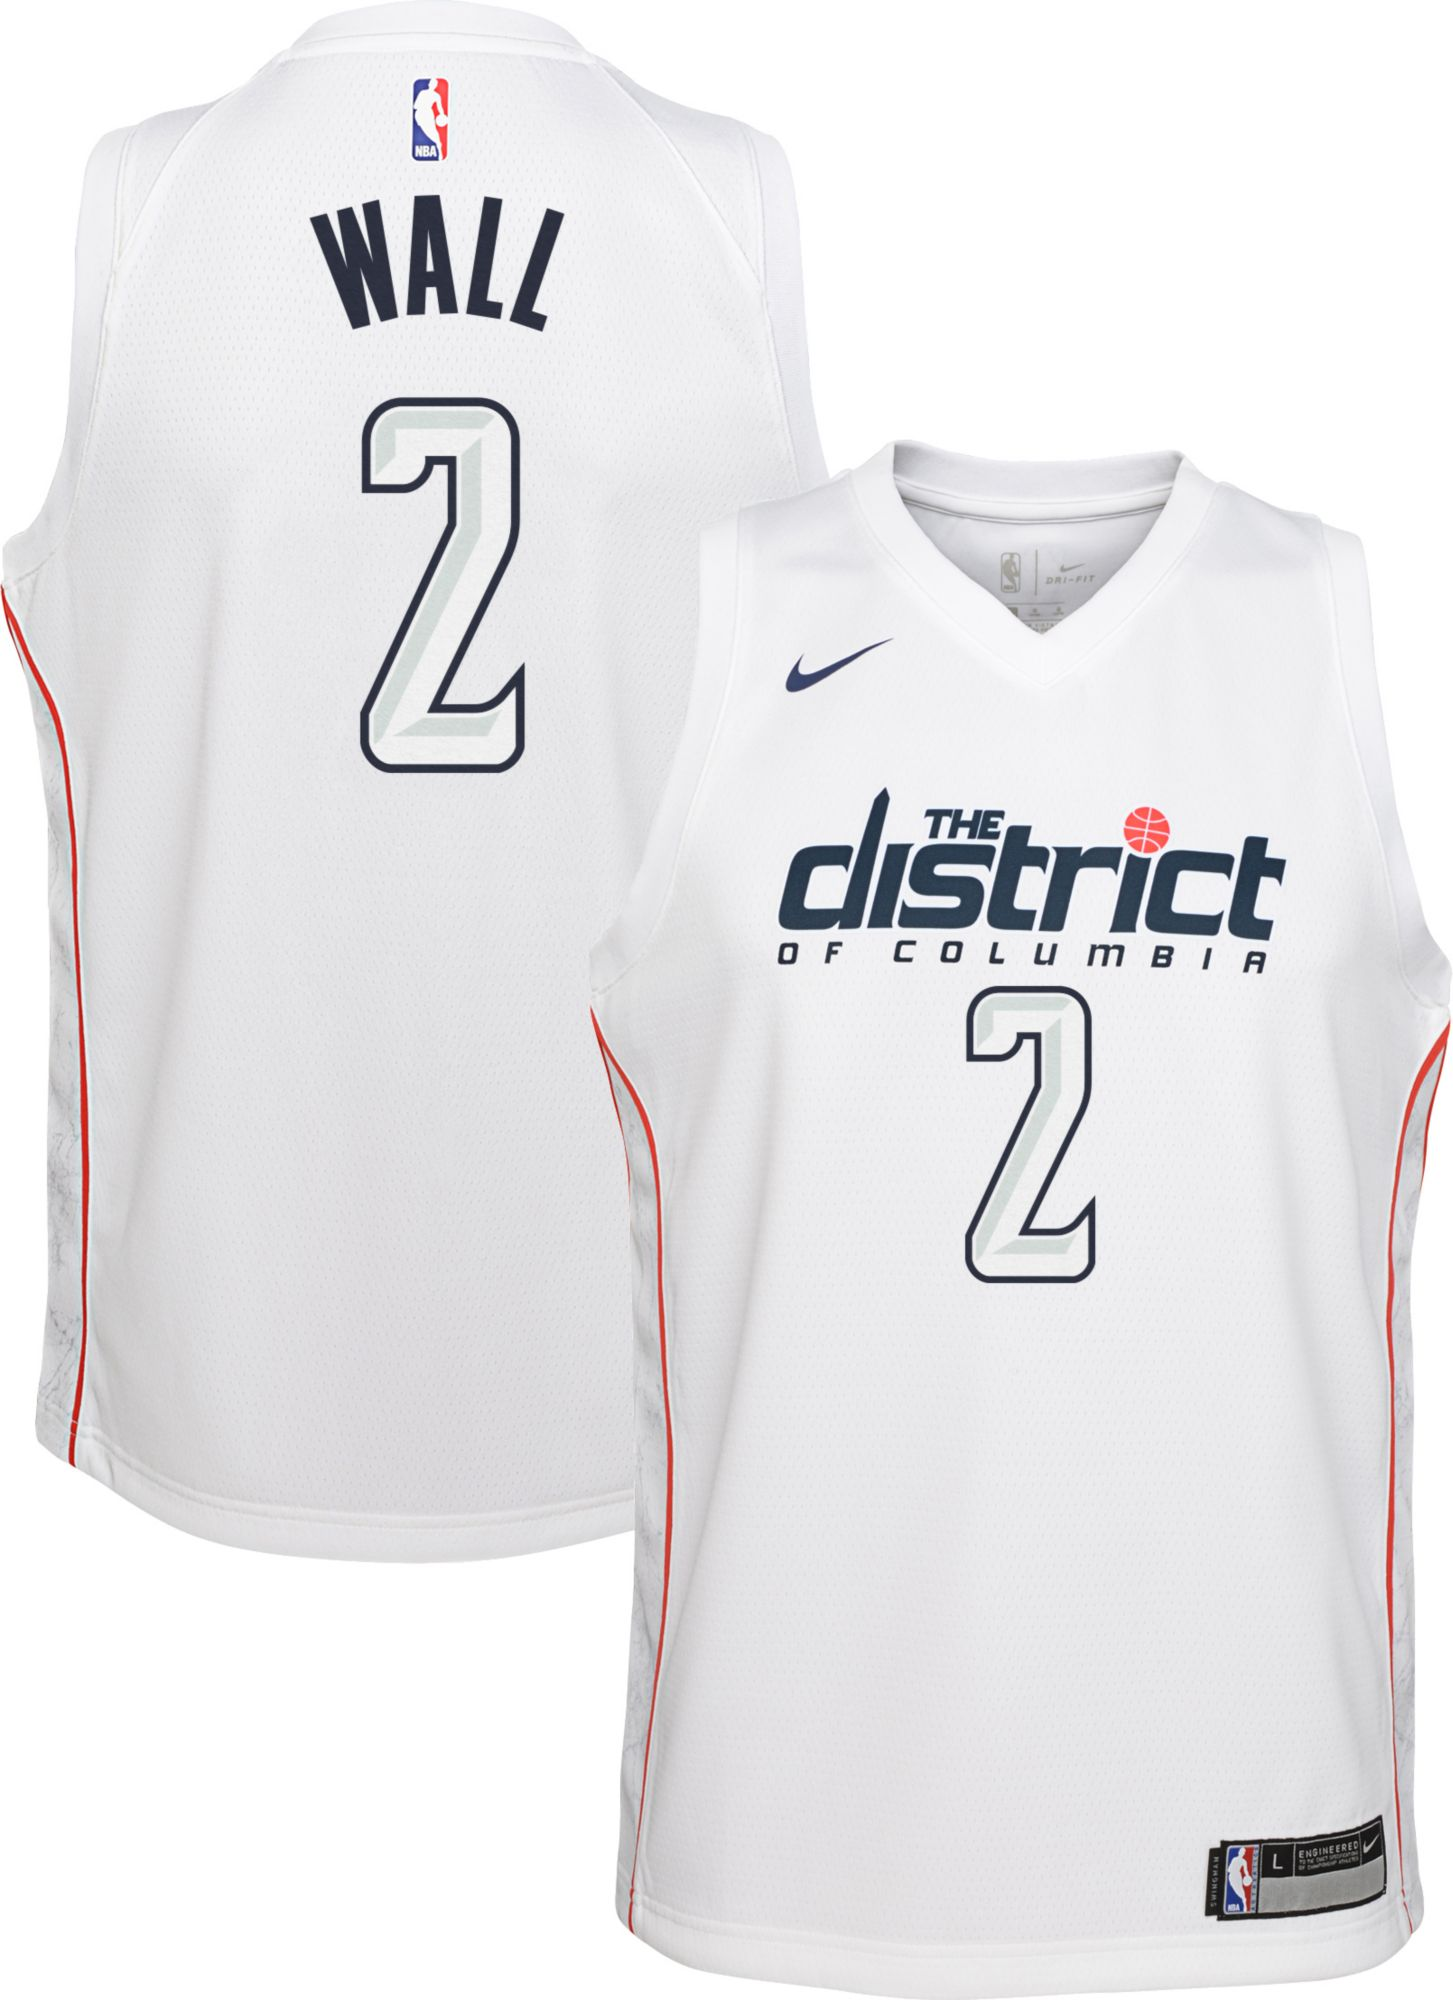 separation shoes 63aa9 f0337 swashington wizards white jersey